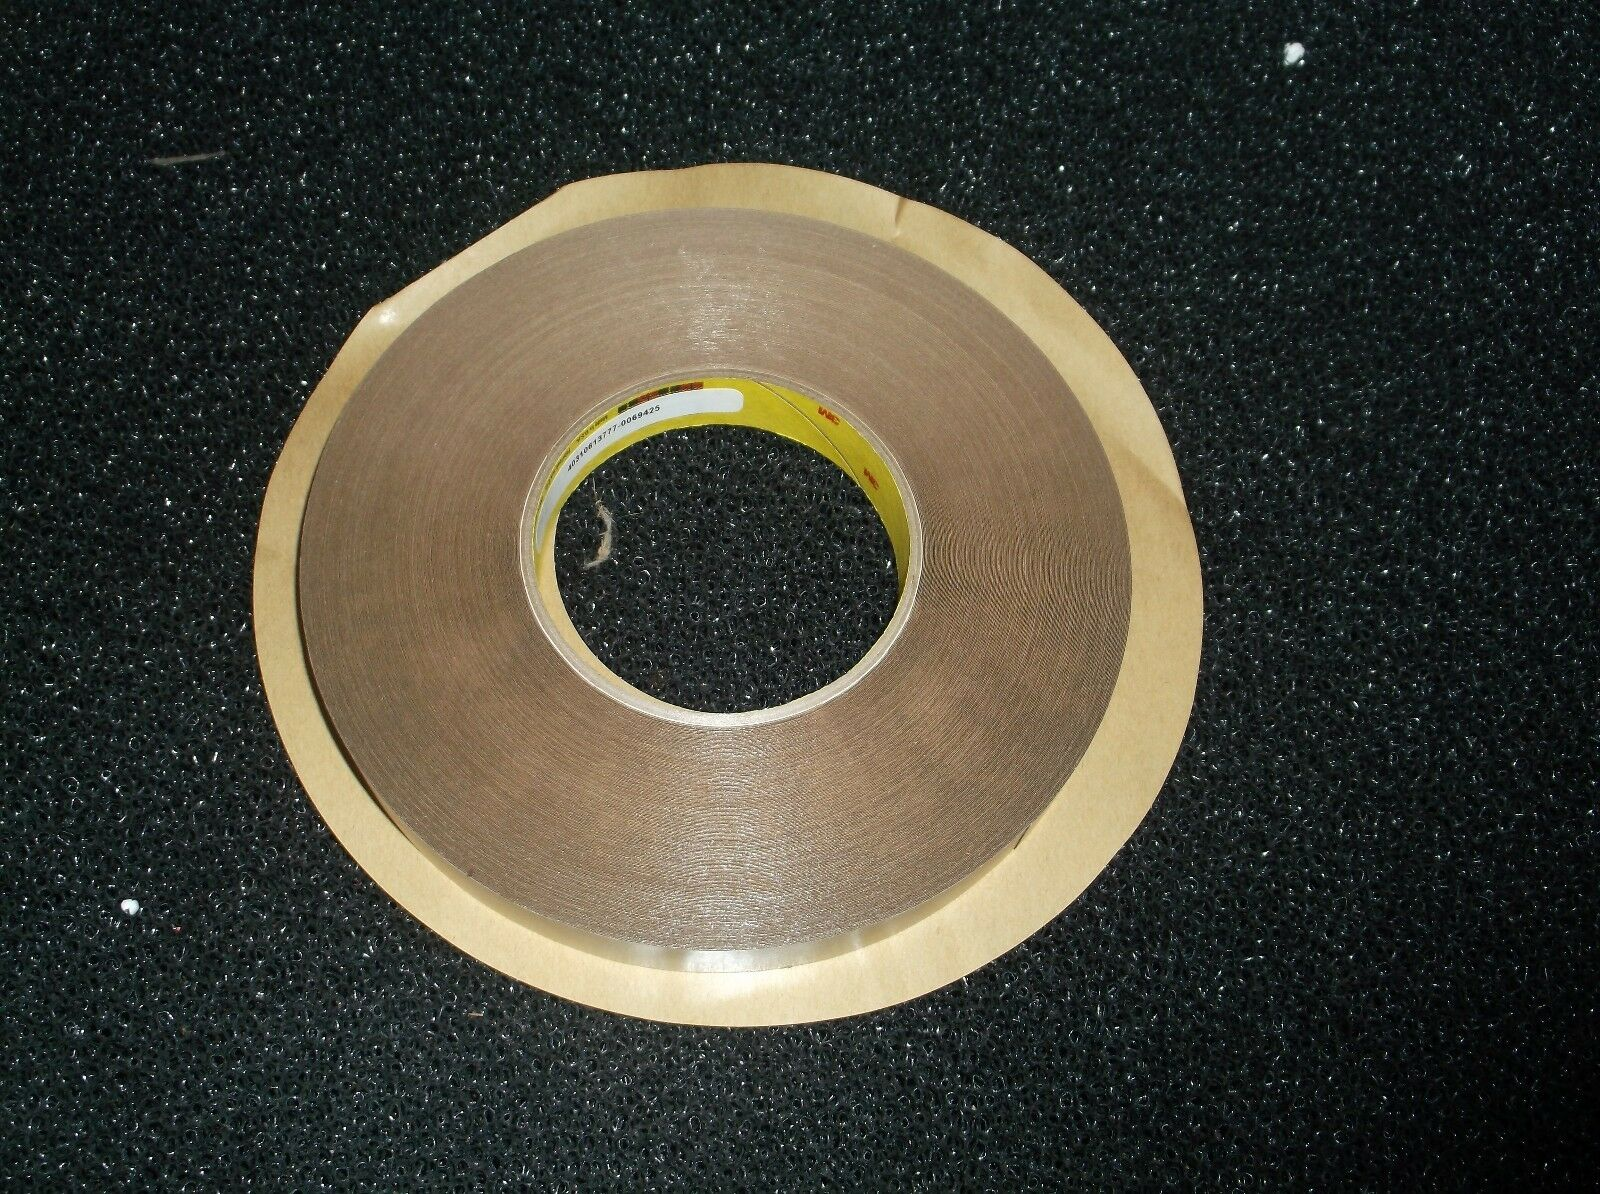 New 3M 00021200677106  Removable Double Sided Film Tape, 3 4  x72 yds. (C56J)